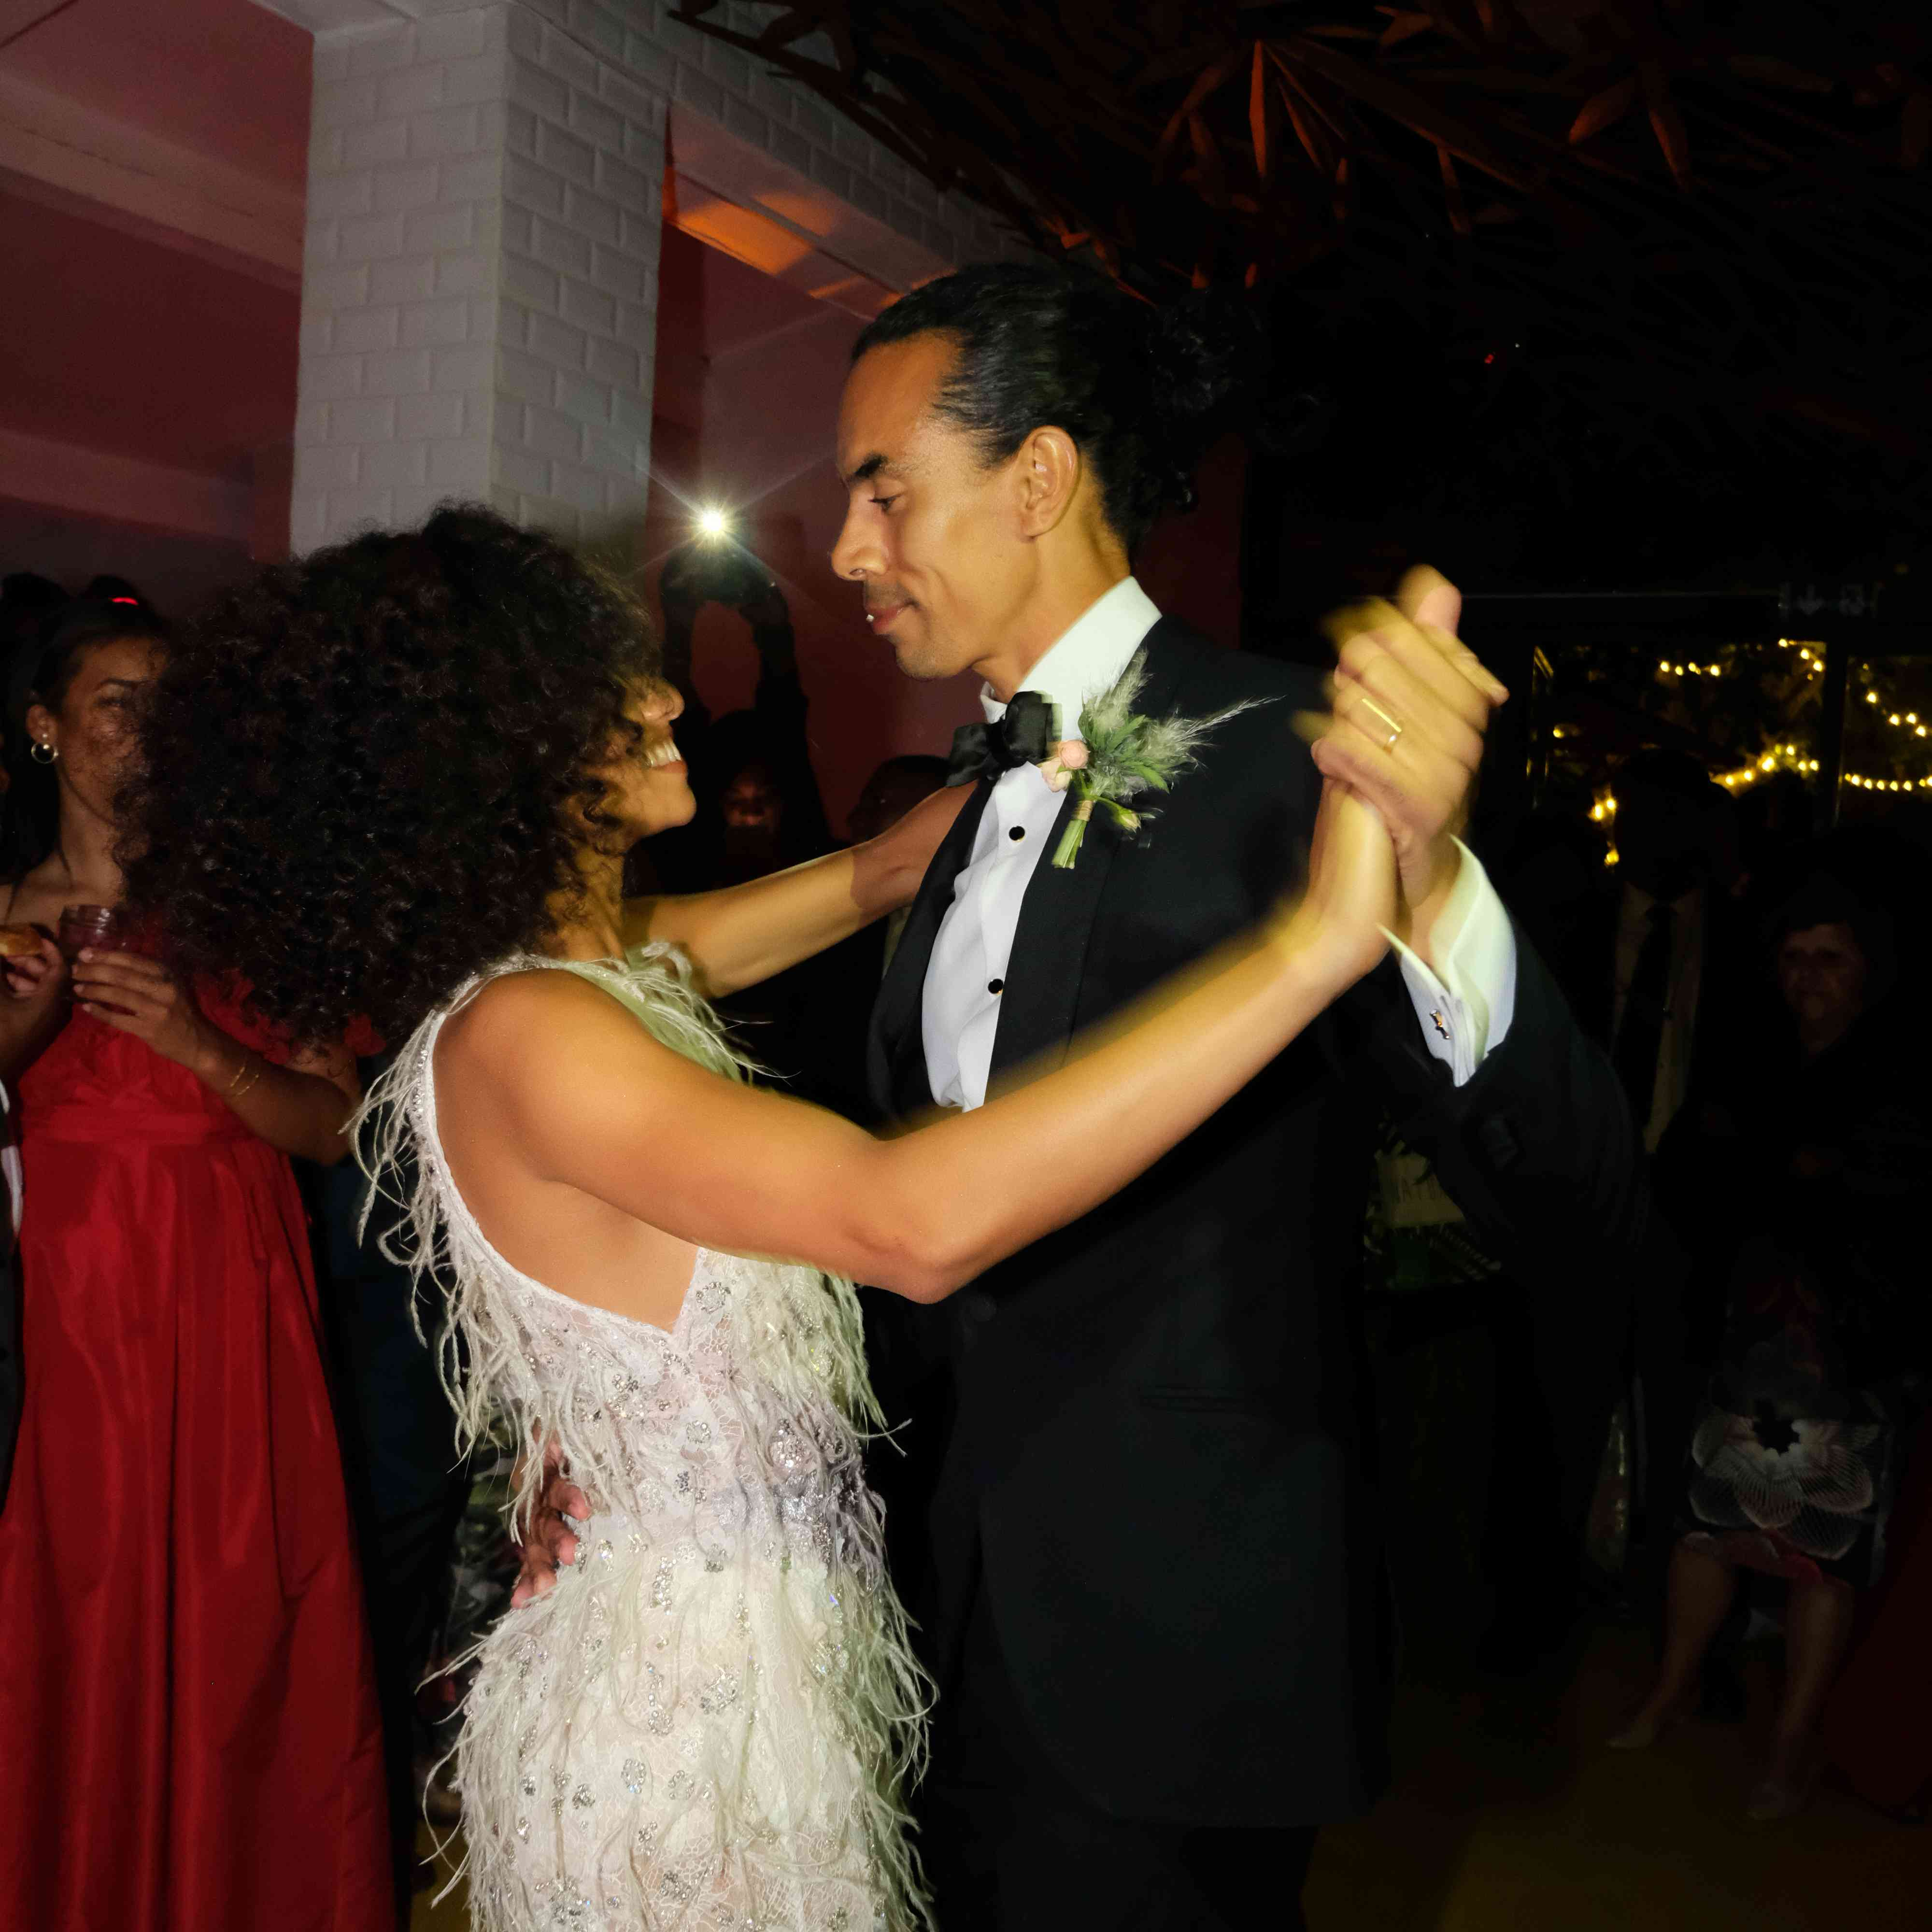 <p>couple dancing</p><br><br>